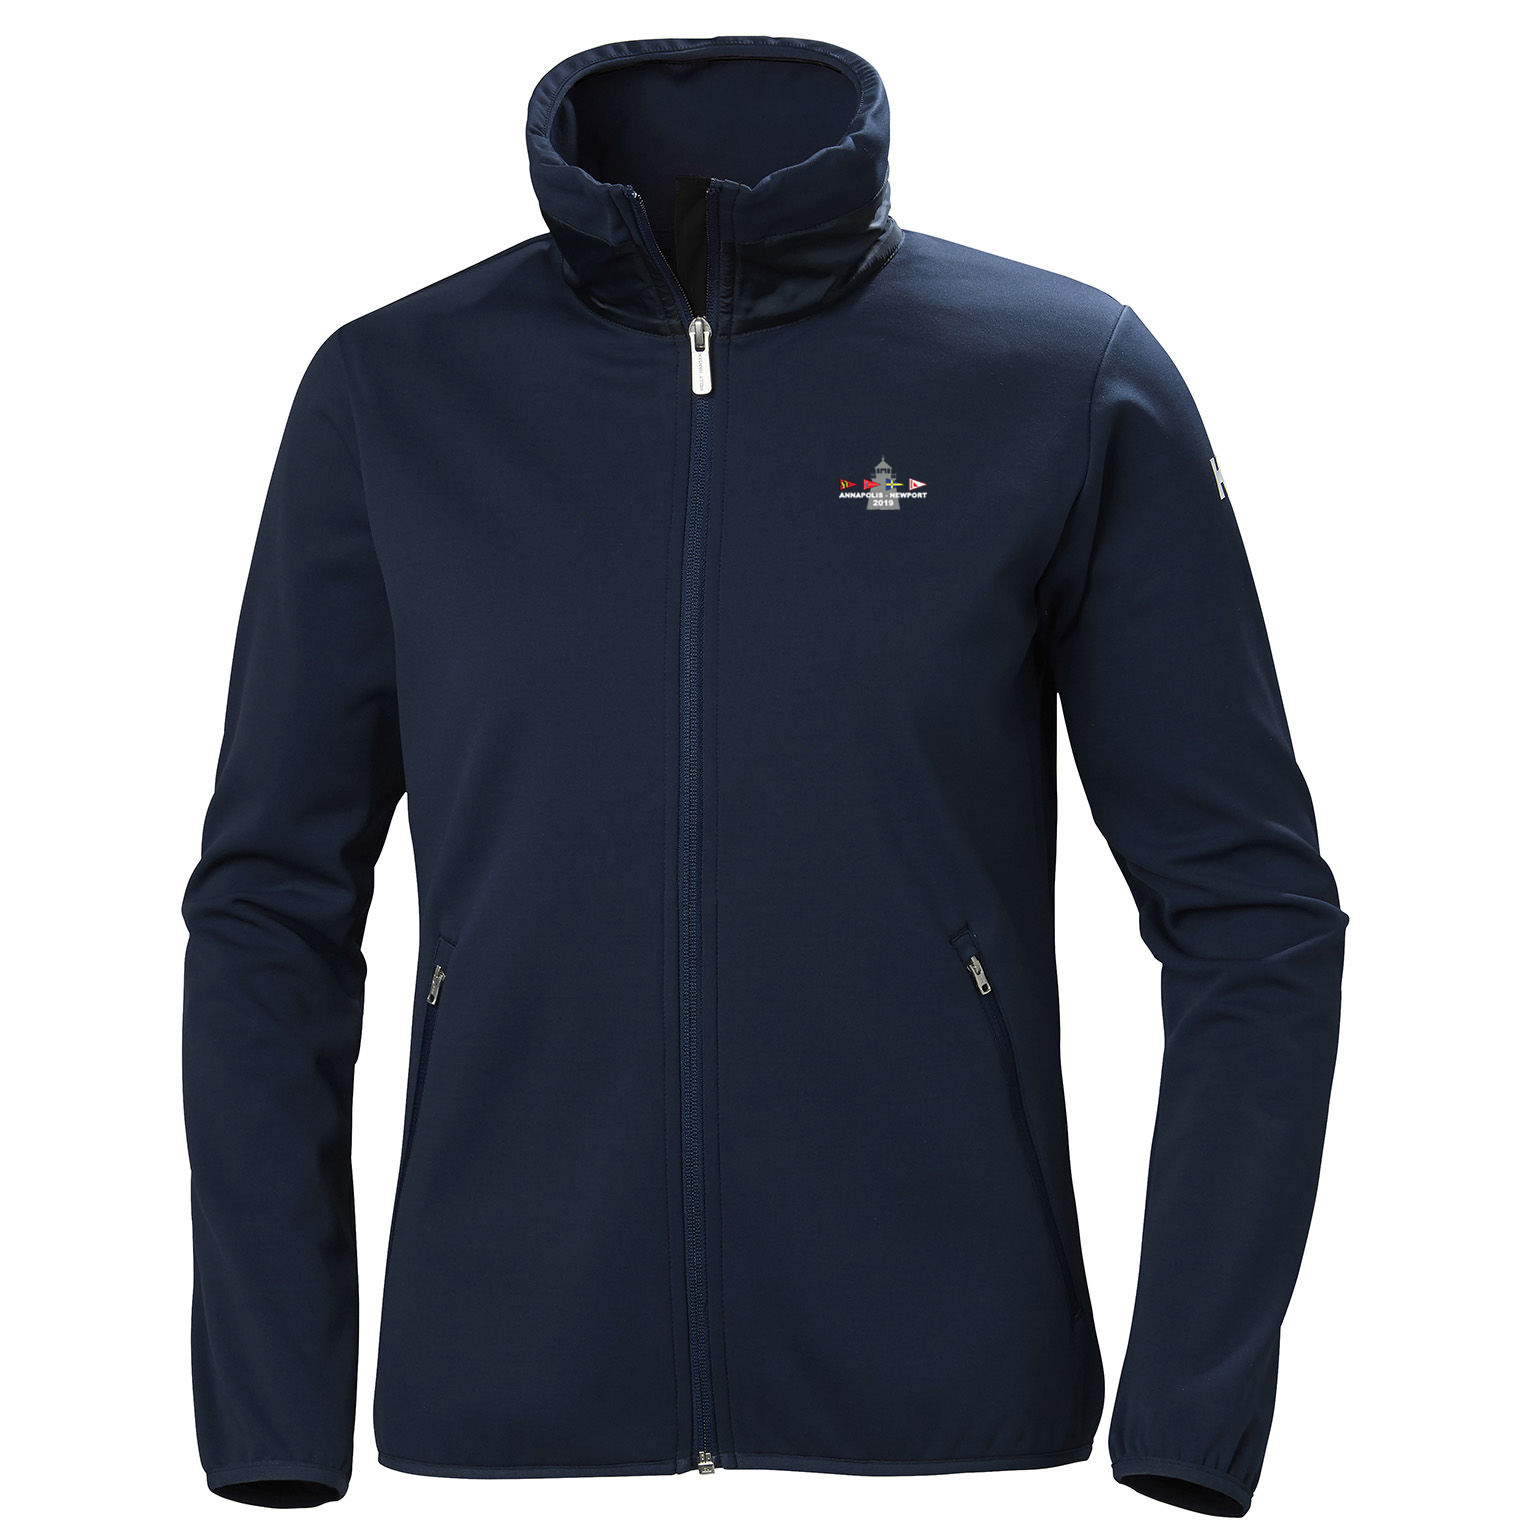 A2N19 - HELLY HANSEN WOMEN'S NAIAD FLEECE JACKET